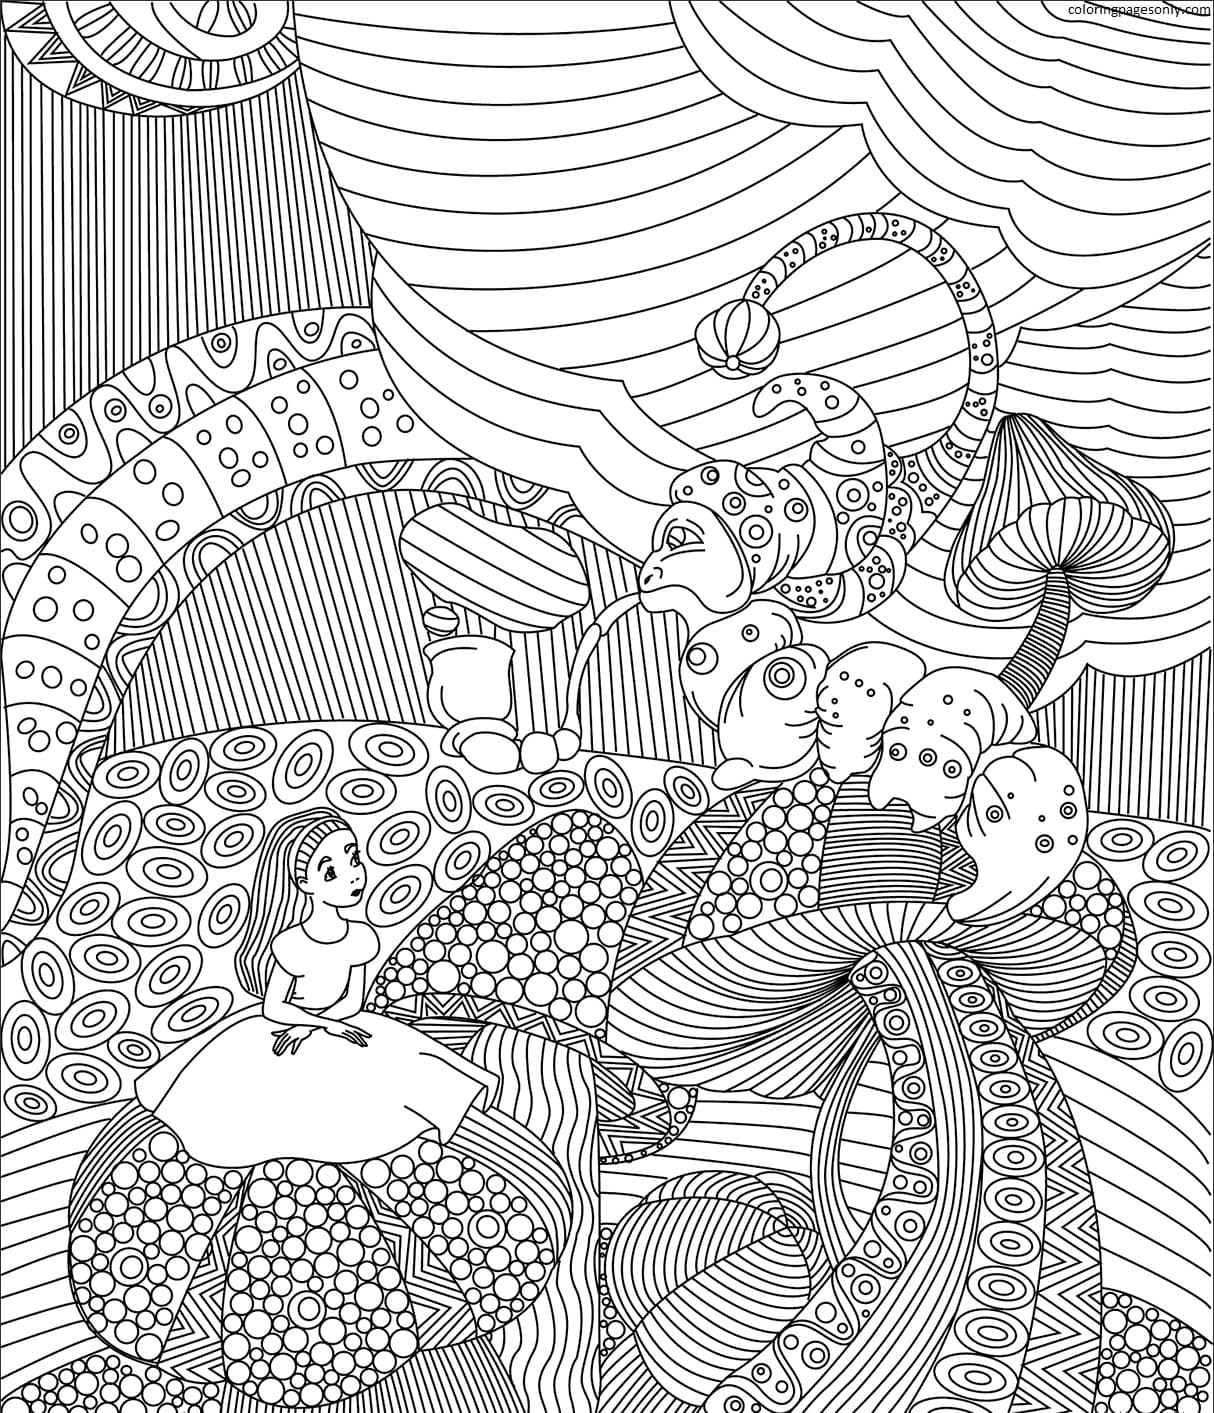 Alice Meets the Blue Caterpillar Coloring Page